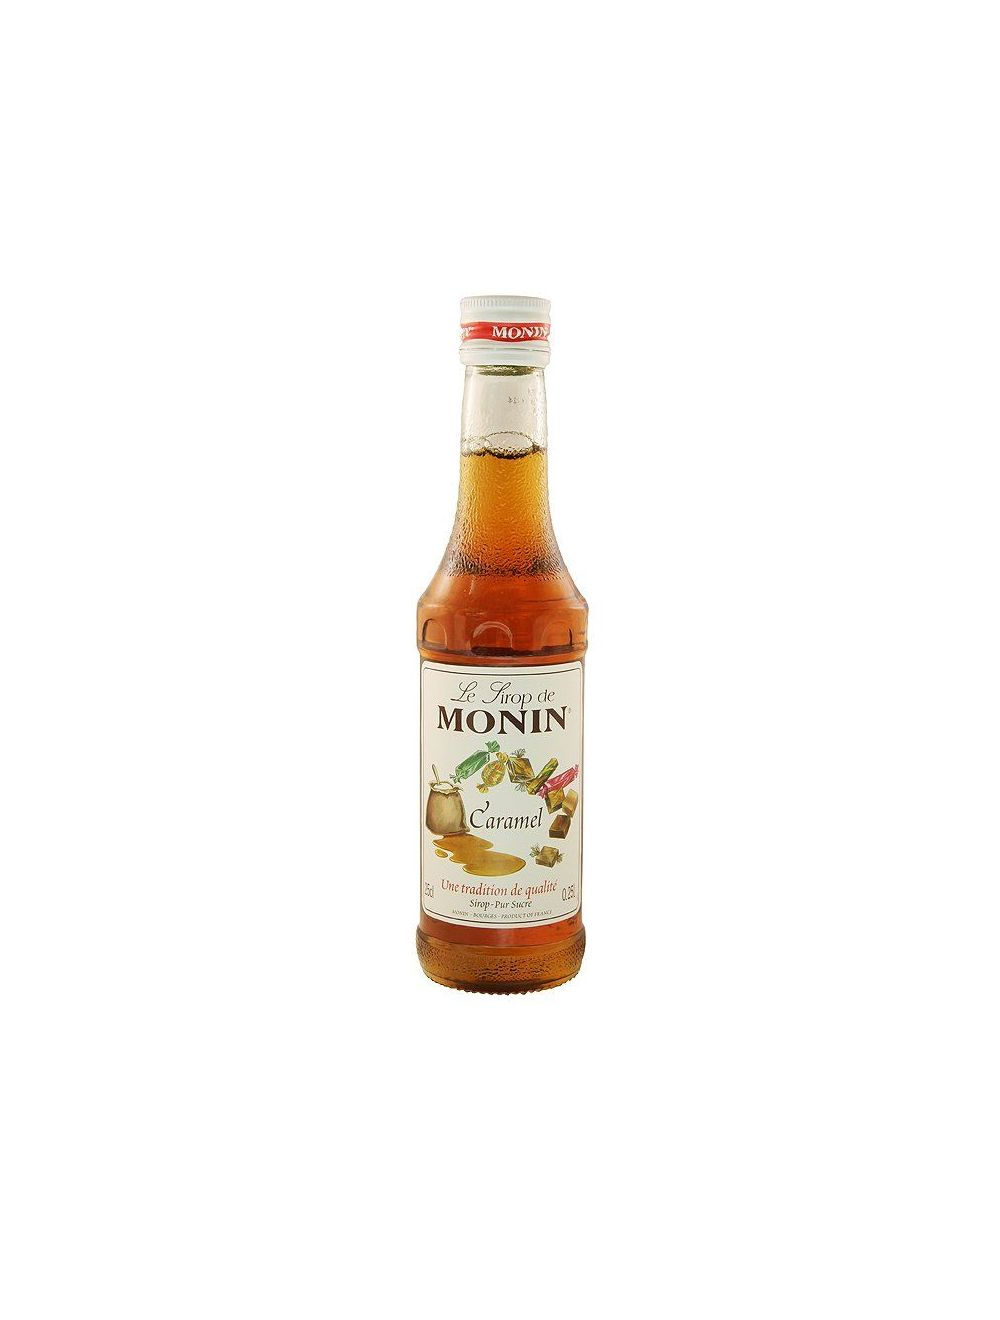 Monin Caramel Syrup 250ml Bottle